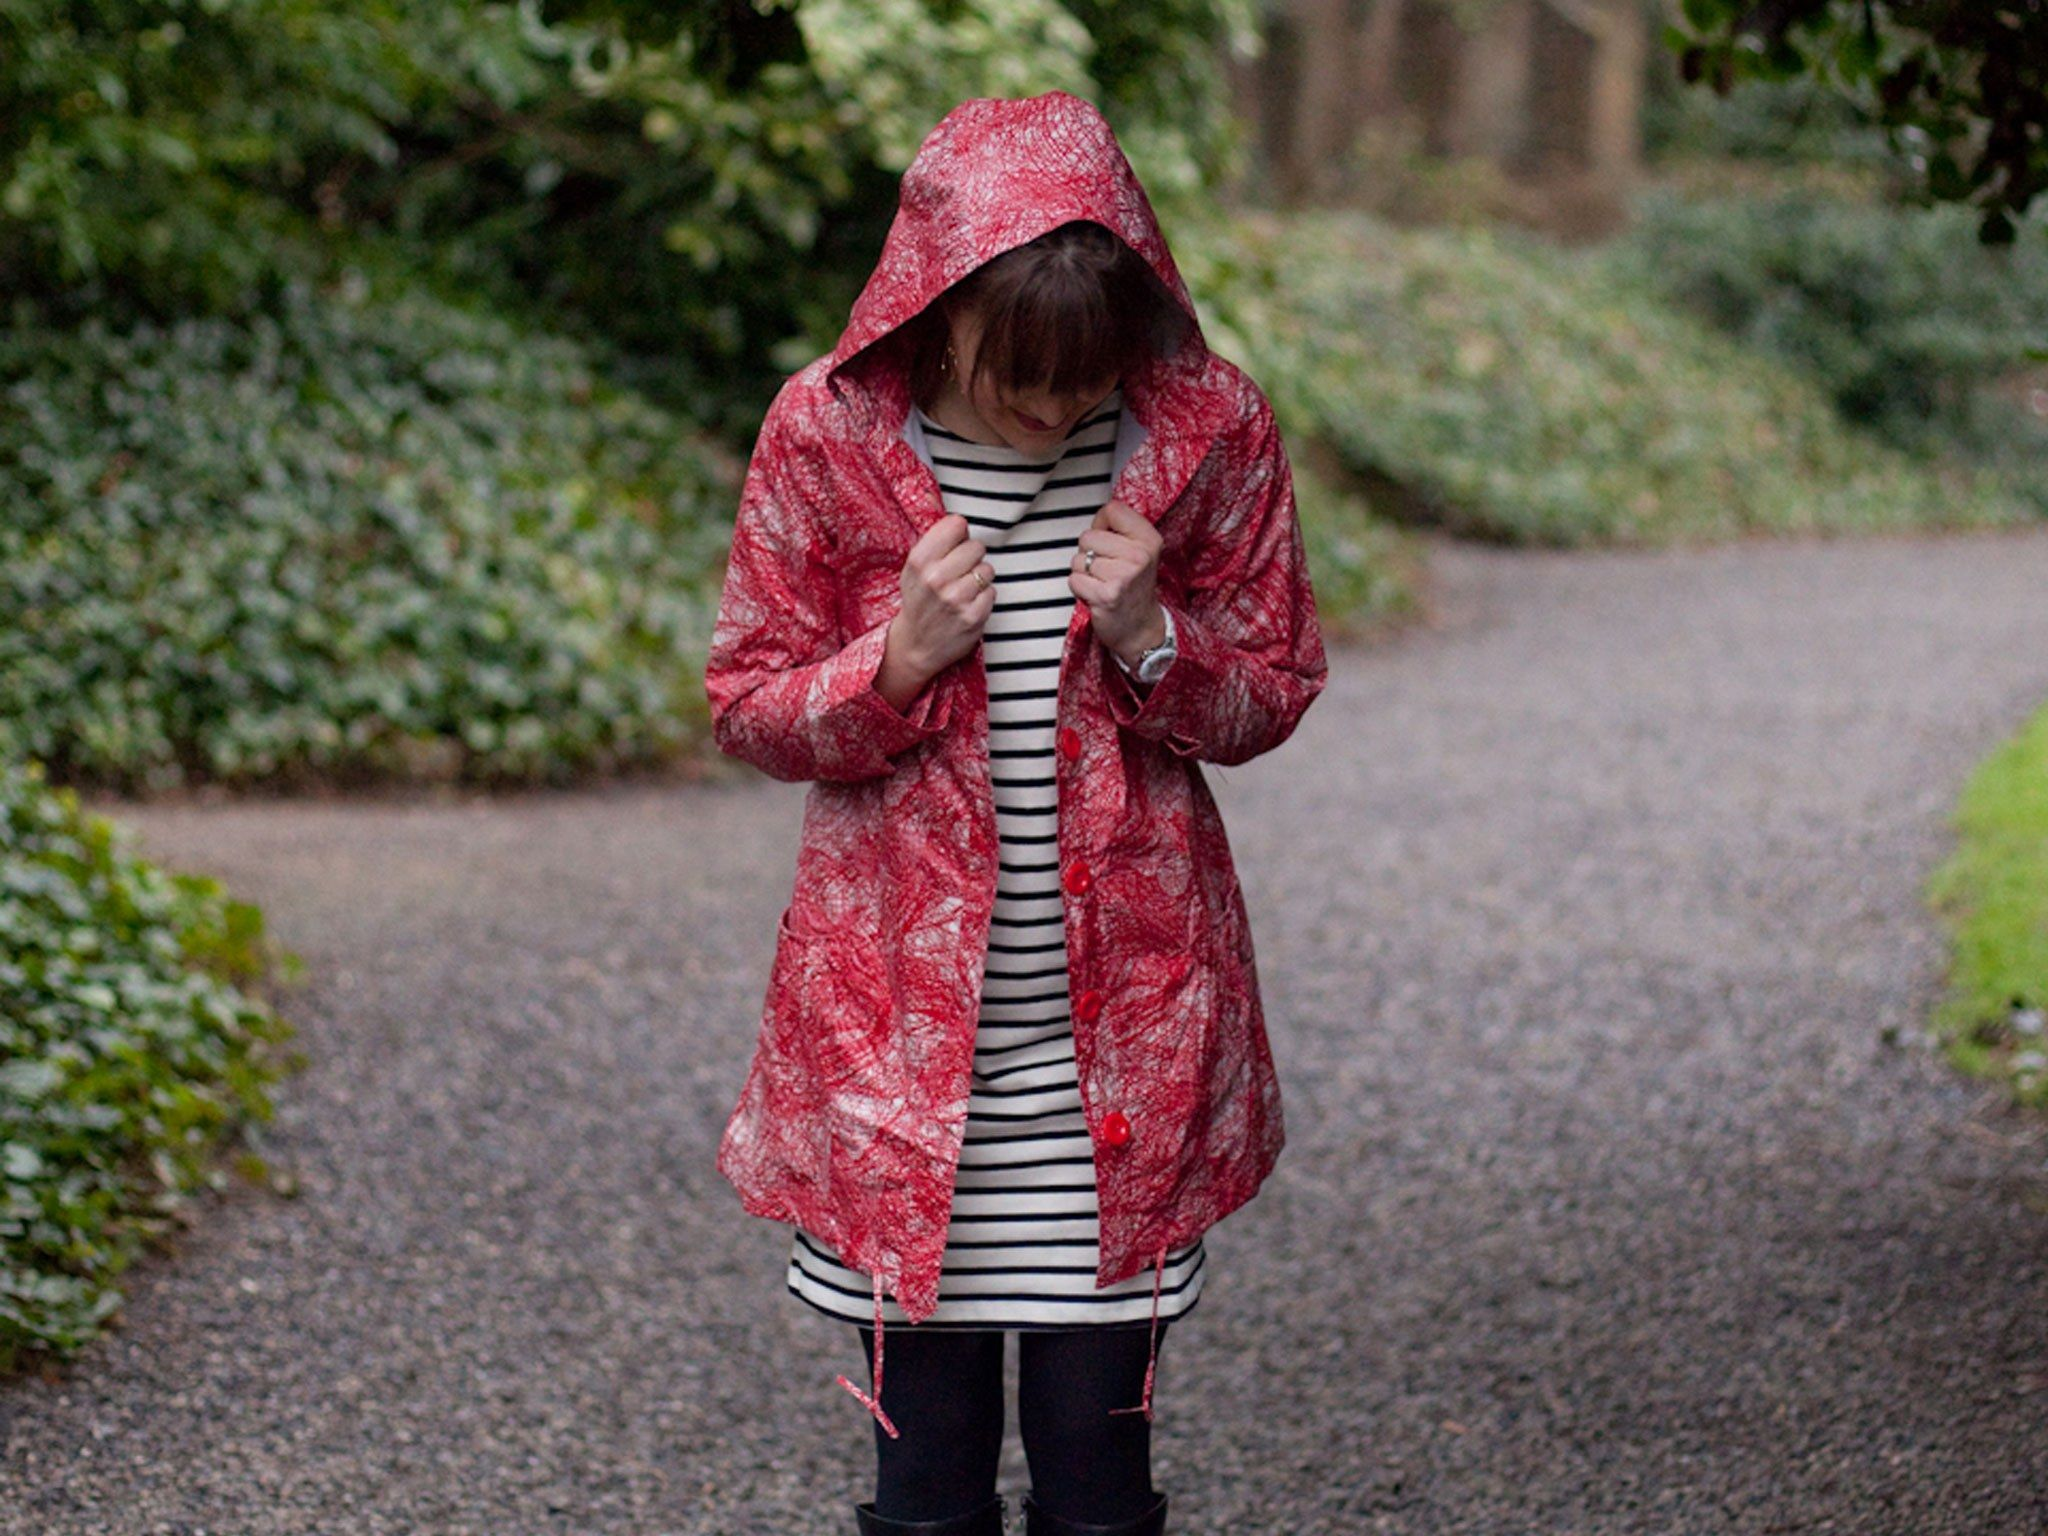 From cold winters to seemingly endless rain, dressing in Ireland is no easy task. Here are 9 insider tips on how to blend in during your visit.